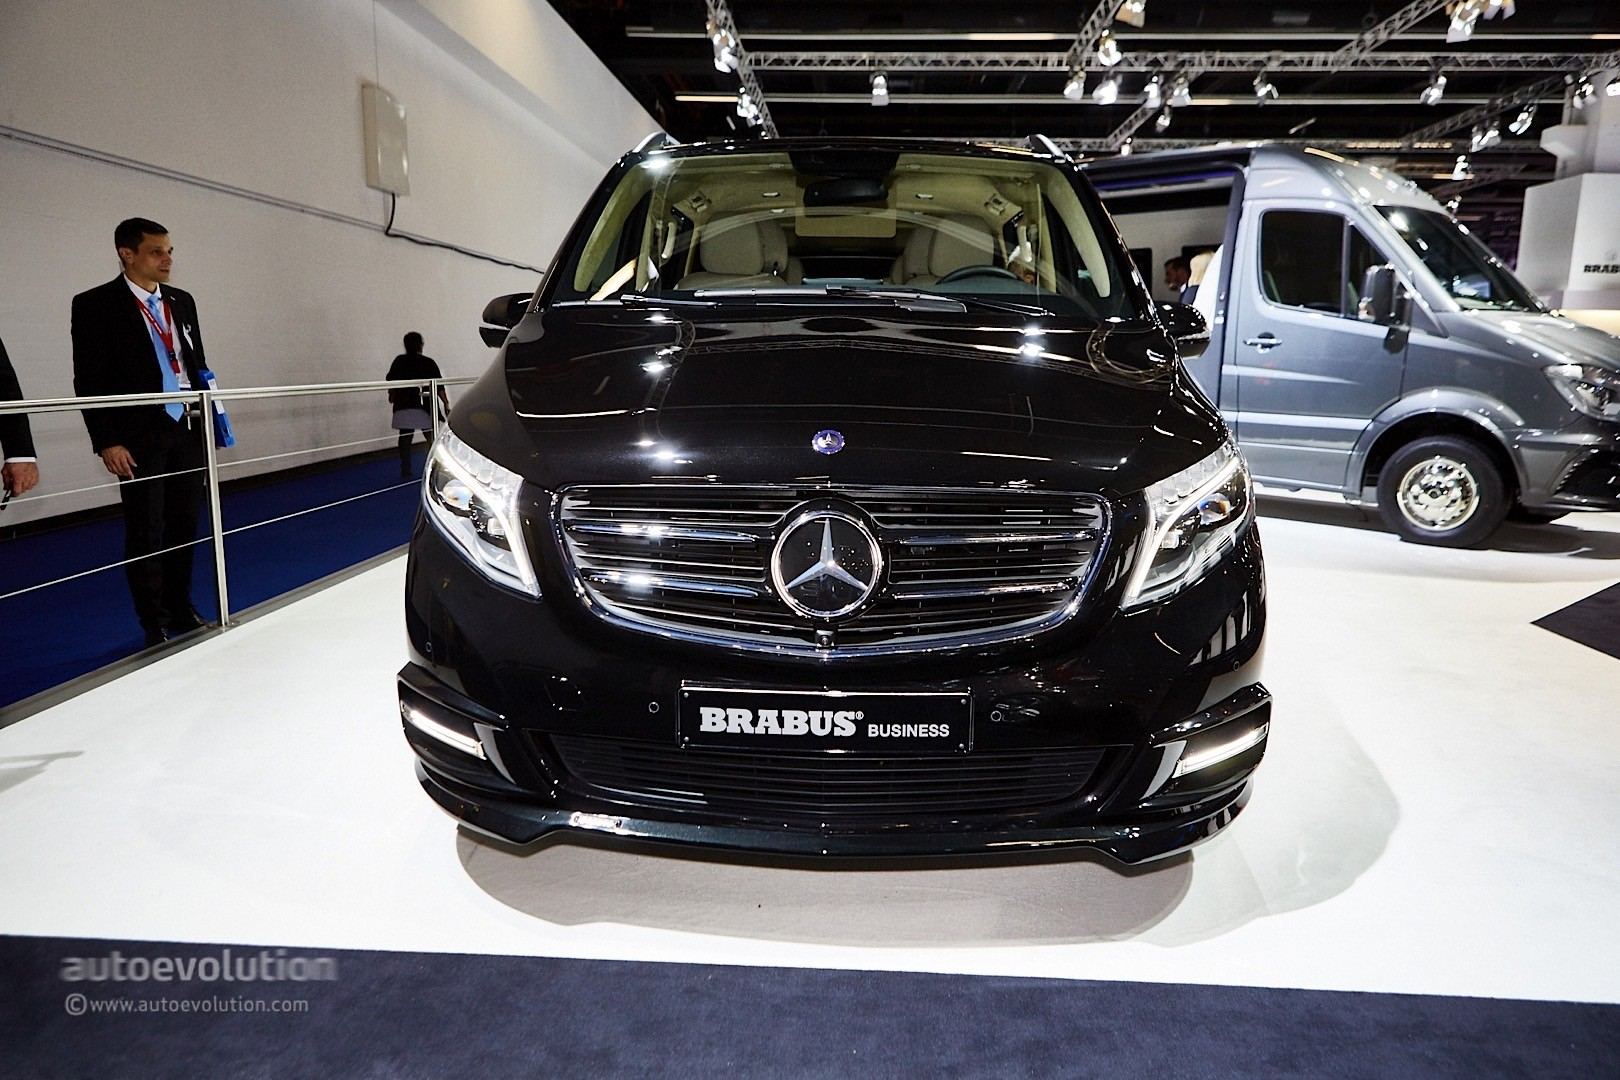 ' ' from the web at 'http://s1.cdn.autoevolution.com/images/news/gallery/brabus-sprinter-and-v-class-fill-the-luxury-van-gap-in-frankfurt-live-photos_21.jpg'